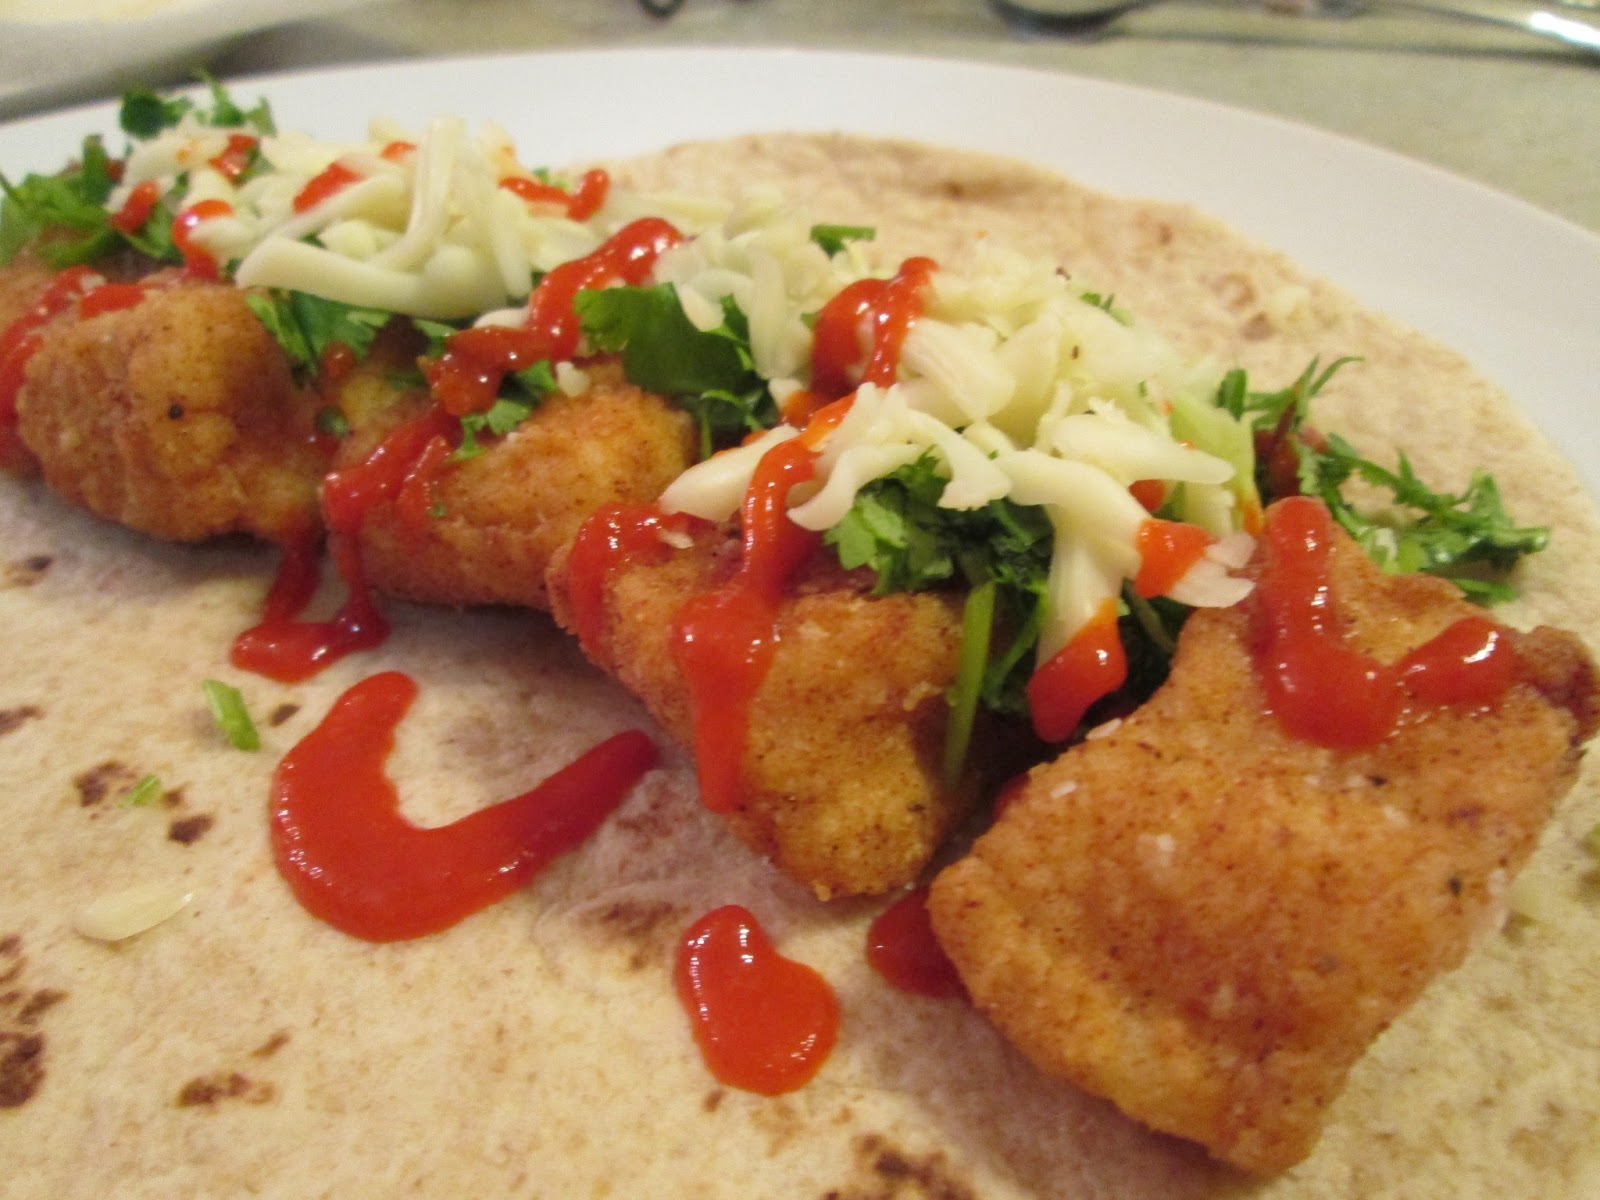 Corcoran street kitchen fried fish tacos for Fried fish taco recipe